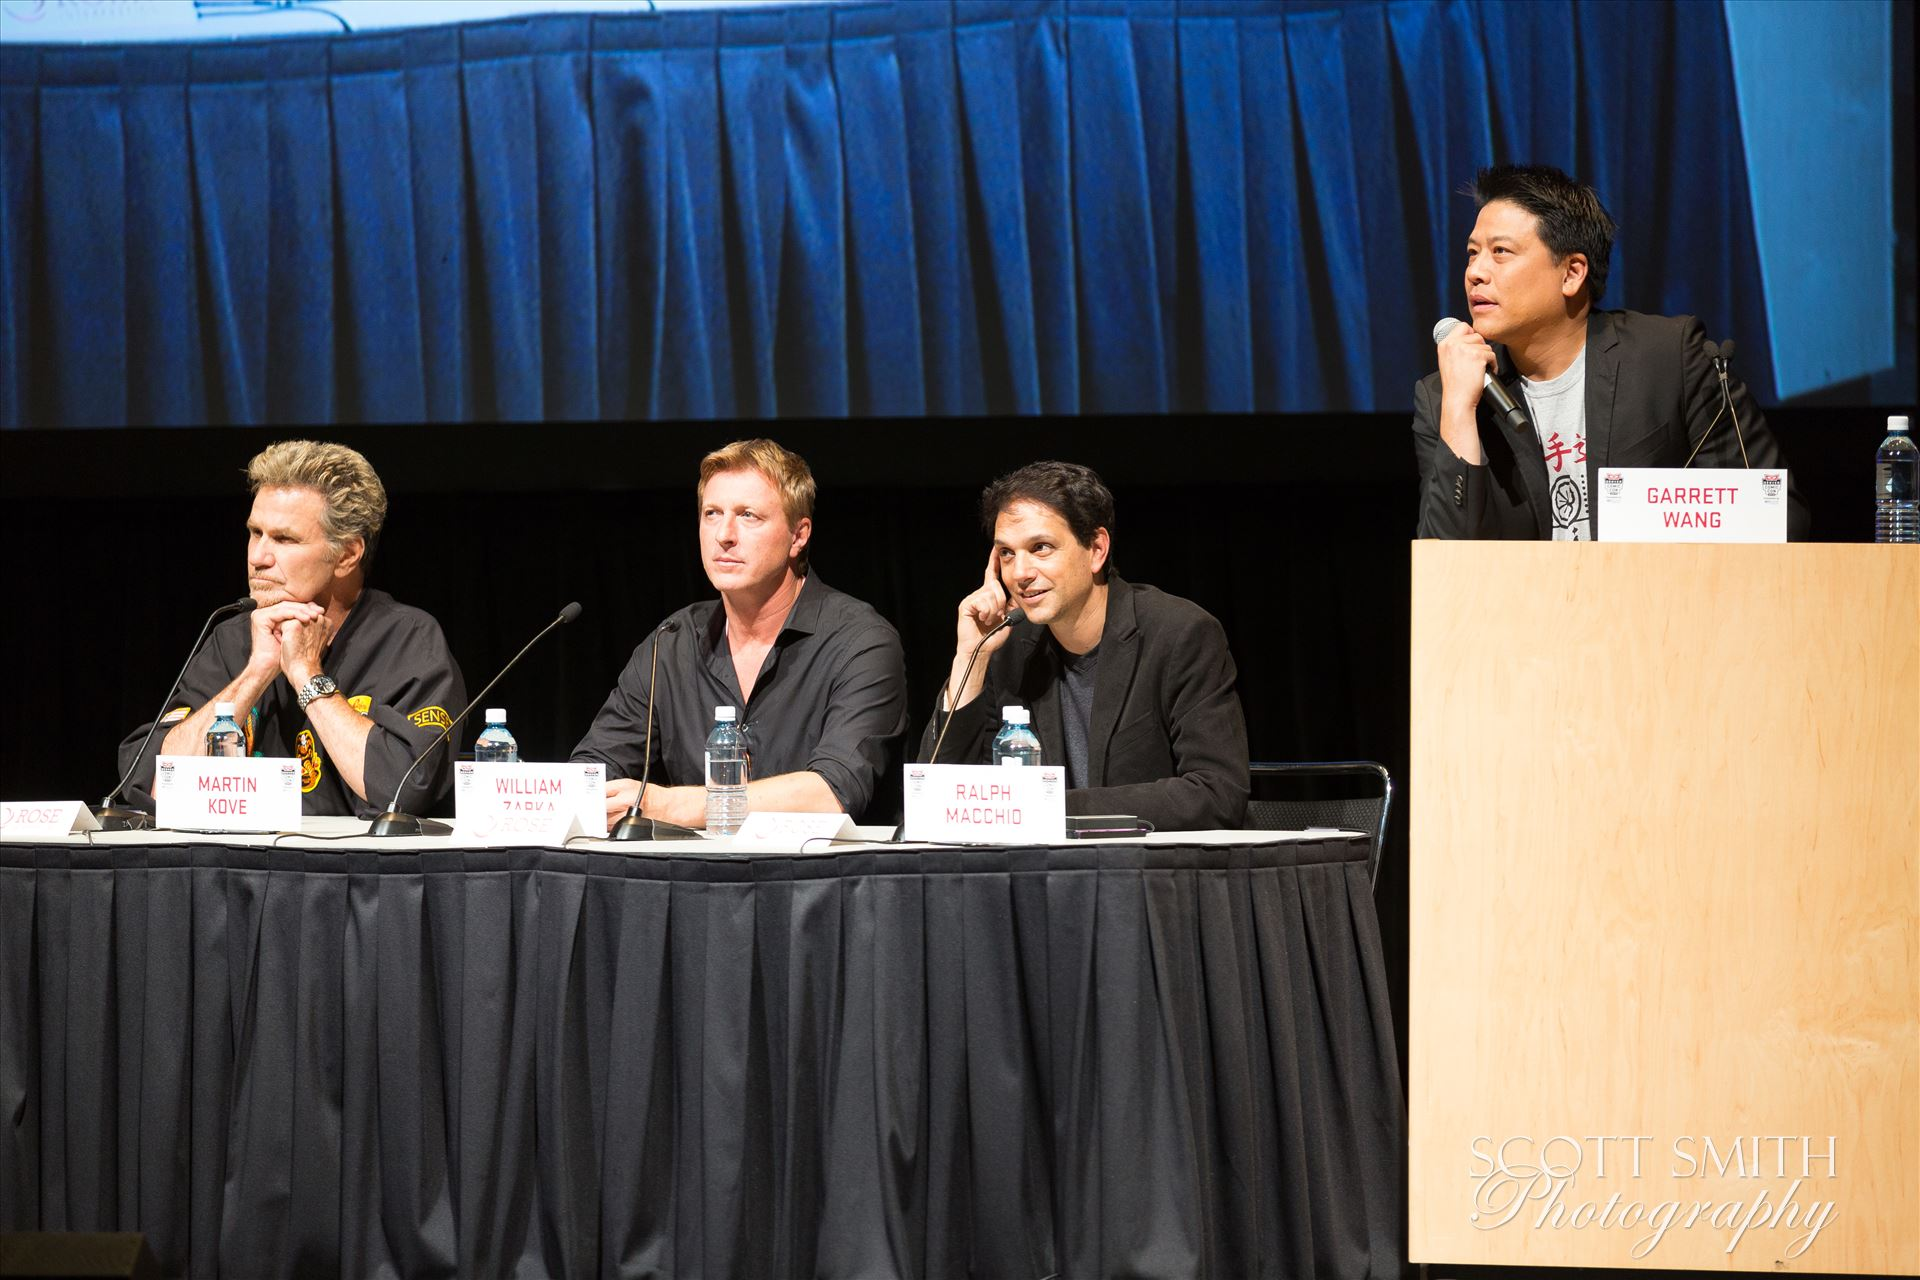 Denver Comic Con 2016 39 - Denver Comic Con 2016 at the Colorado Convention Center. Garrett Wang, Ralph Macchio, Martin Kove and William Zabka. by Scott Smith Photos